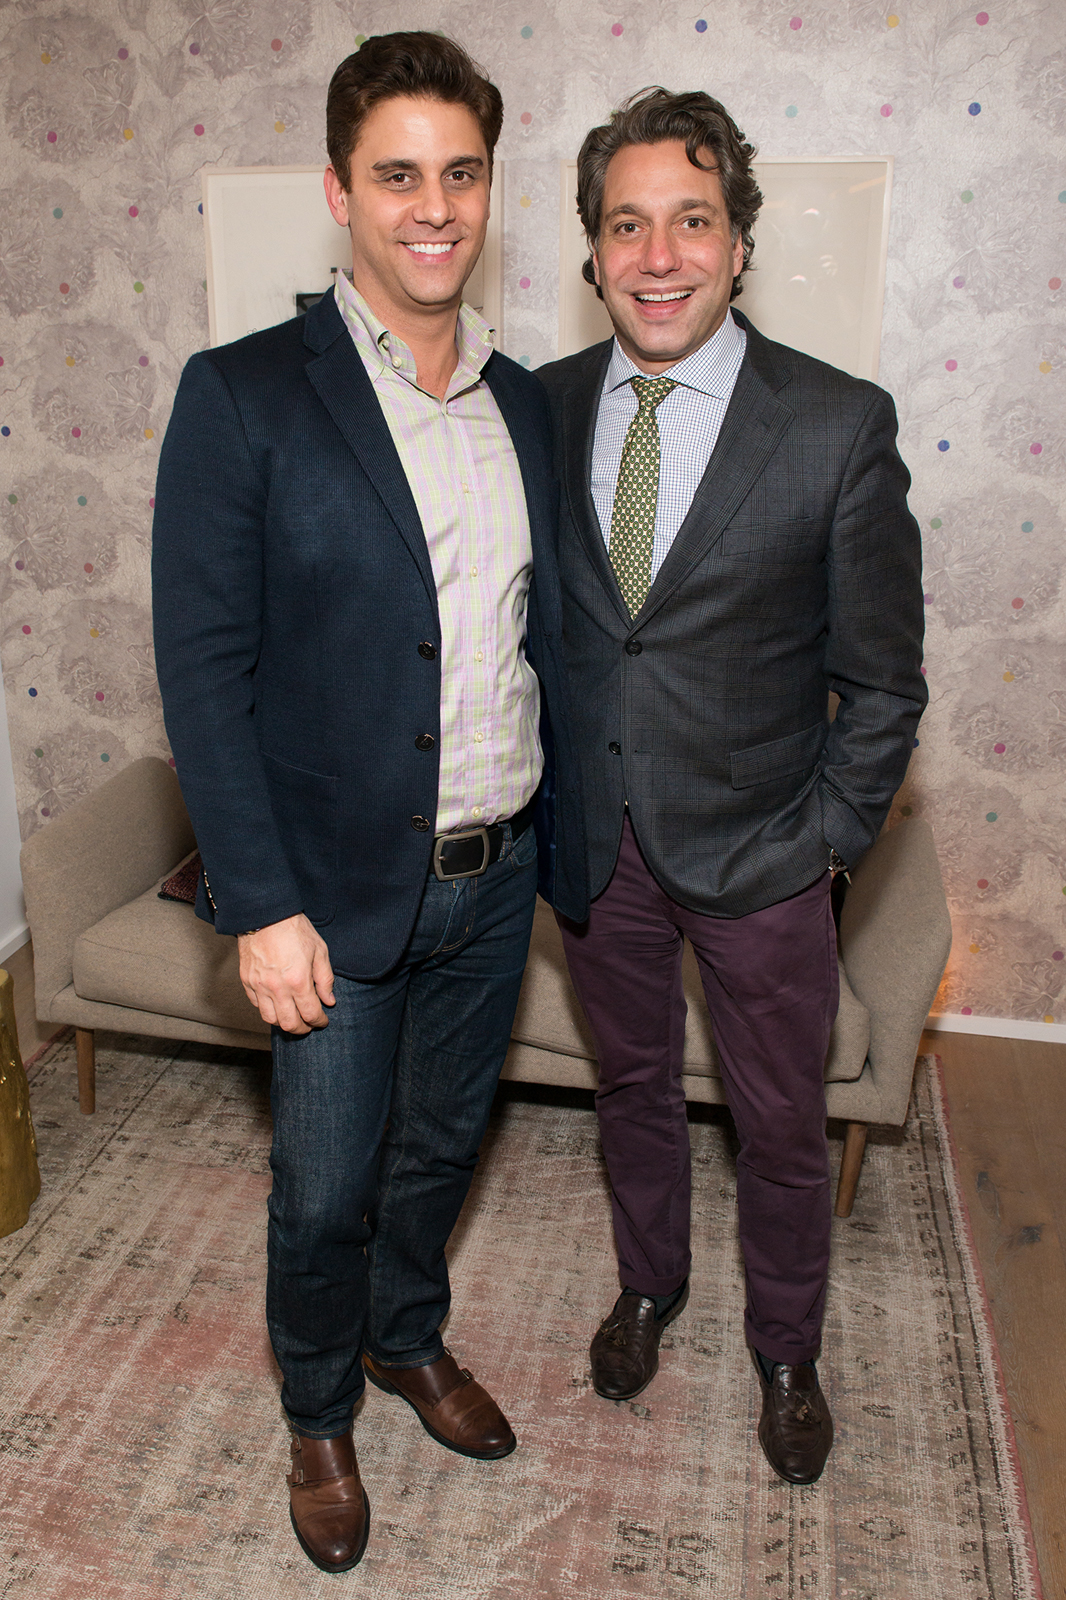 Aaron Schurgin and Thom Filicia at Dwell DDG Holiday Party